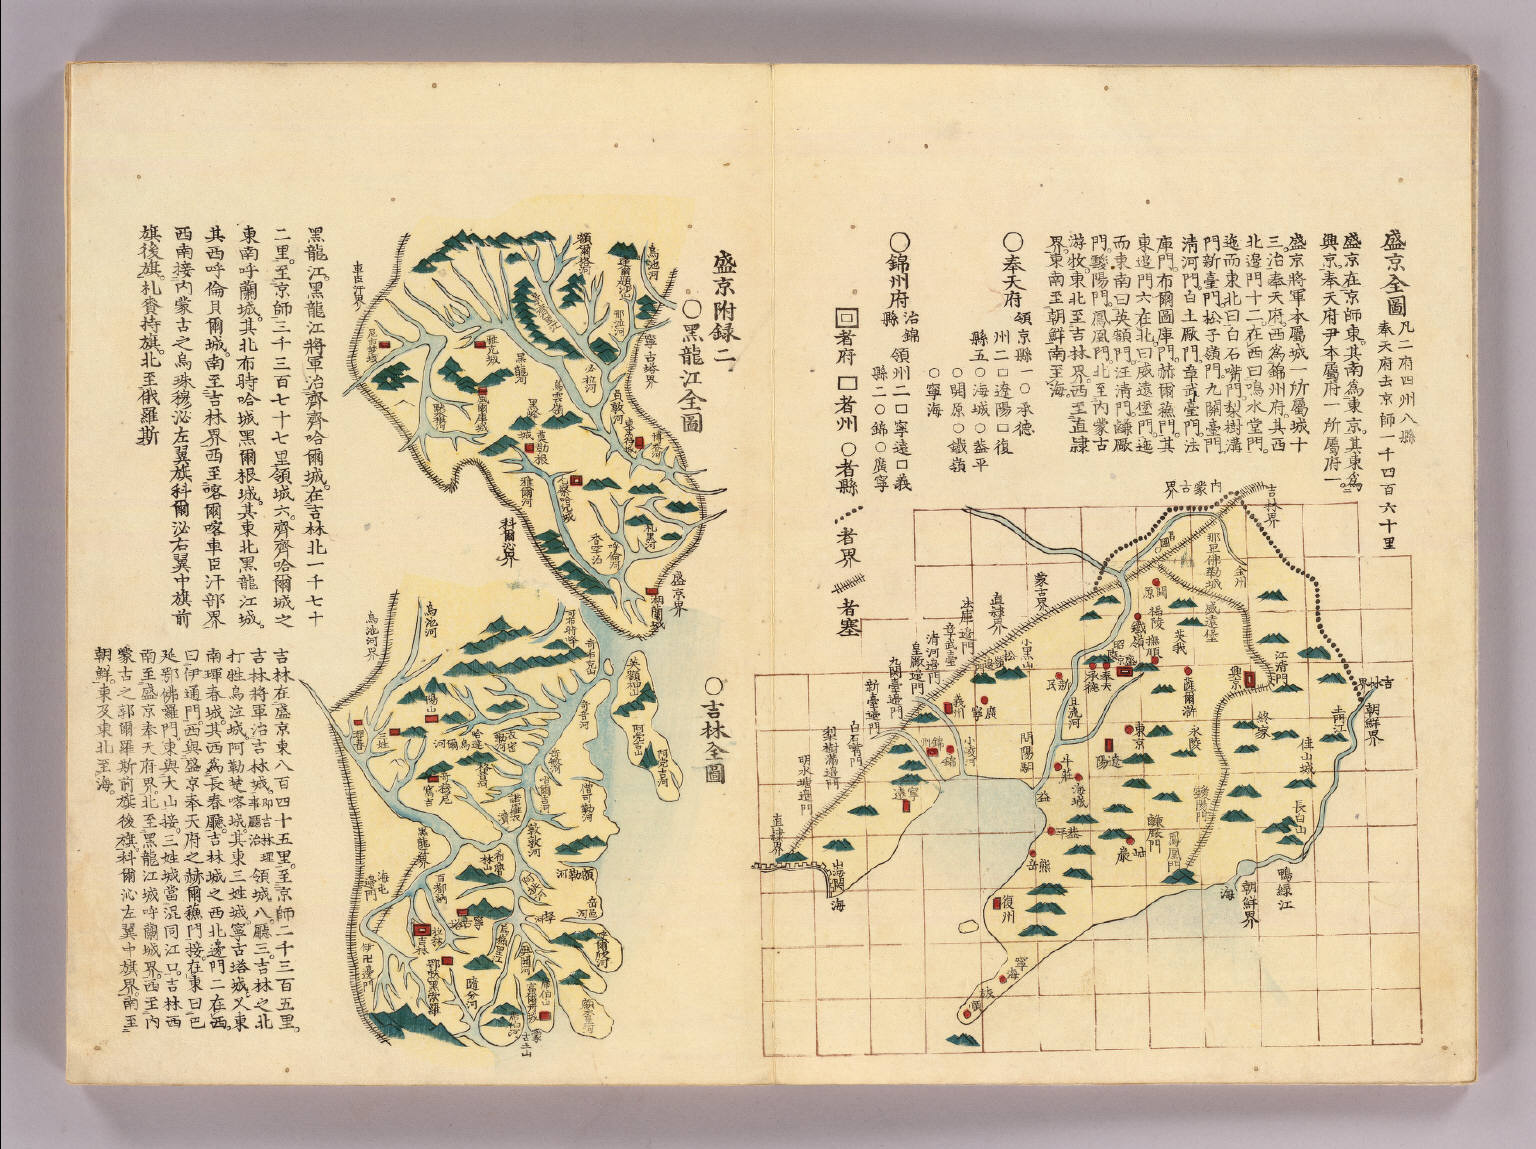 [Liaoning Province]